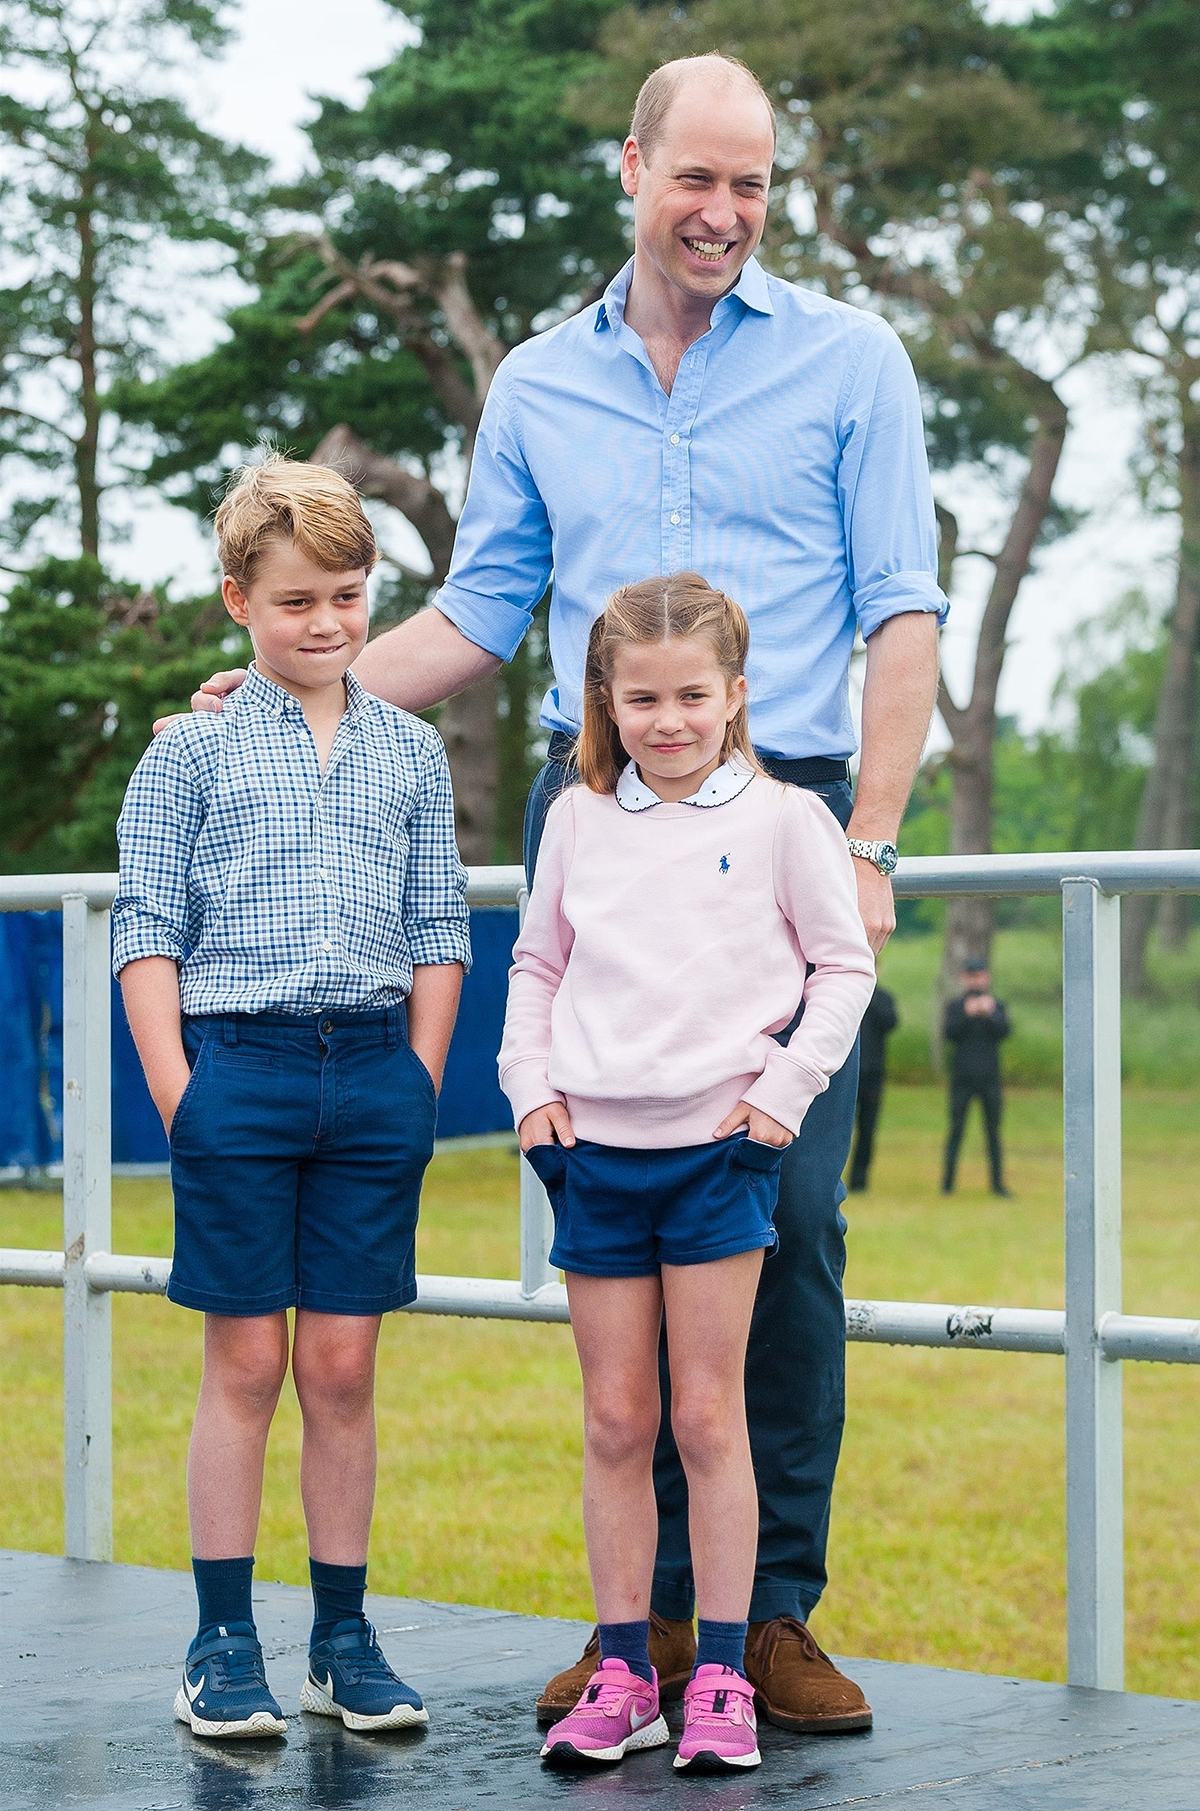 Prince William, Duke of Cambridge arrives at the Sandringham Estate in Sandringham, Norfolk to host the start of a half marathon with his kids Prince George and Princess Charlotte.